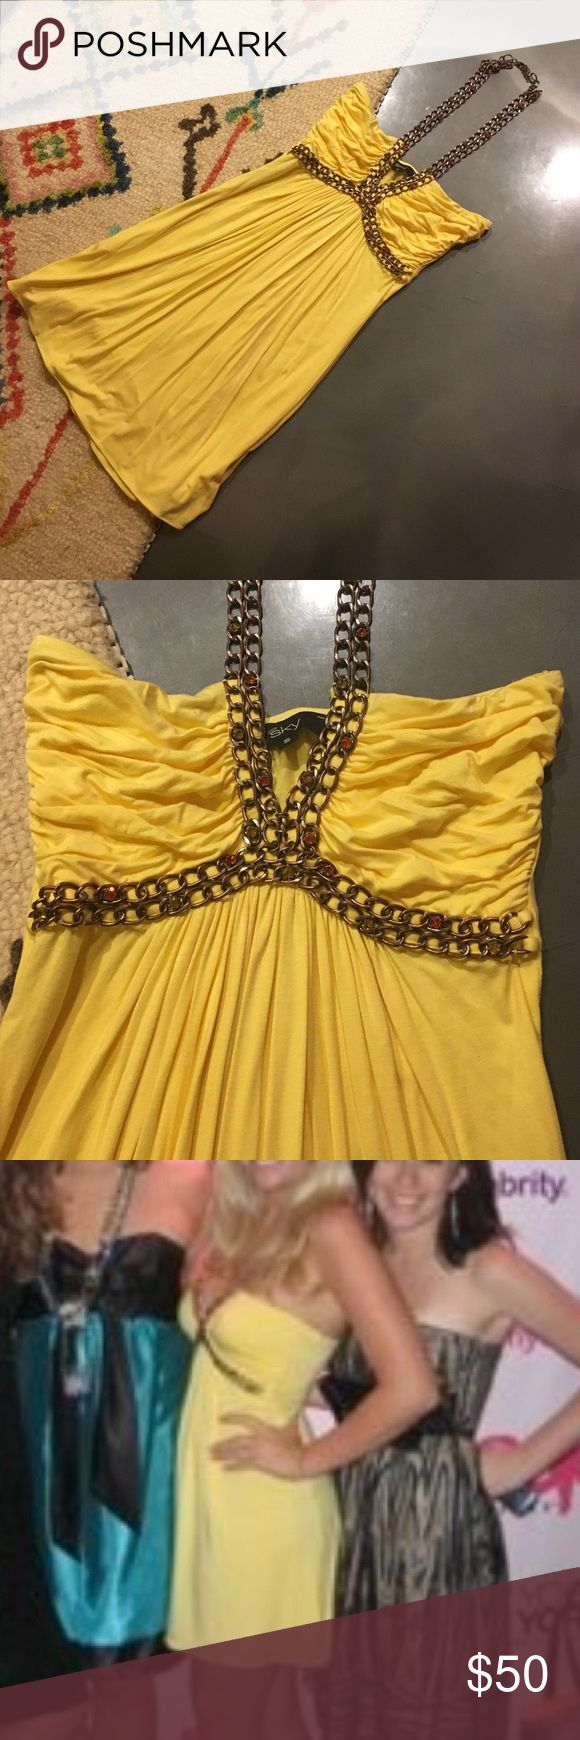 Canary yellow party dress This dress is seriously flattering on everyone! And insanely comfortable! Worn 2 times. Great condition! Fabric is sooooo soft! sky Dresses Mini